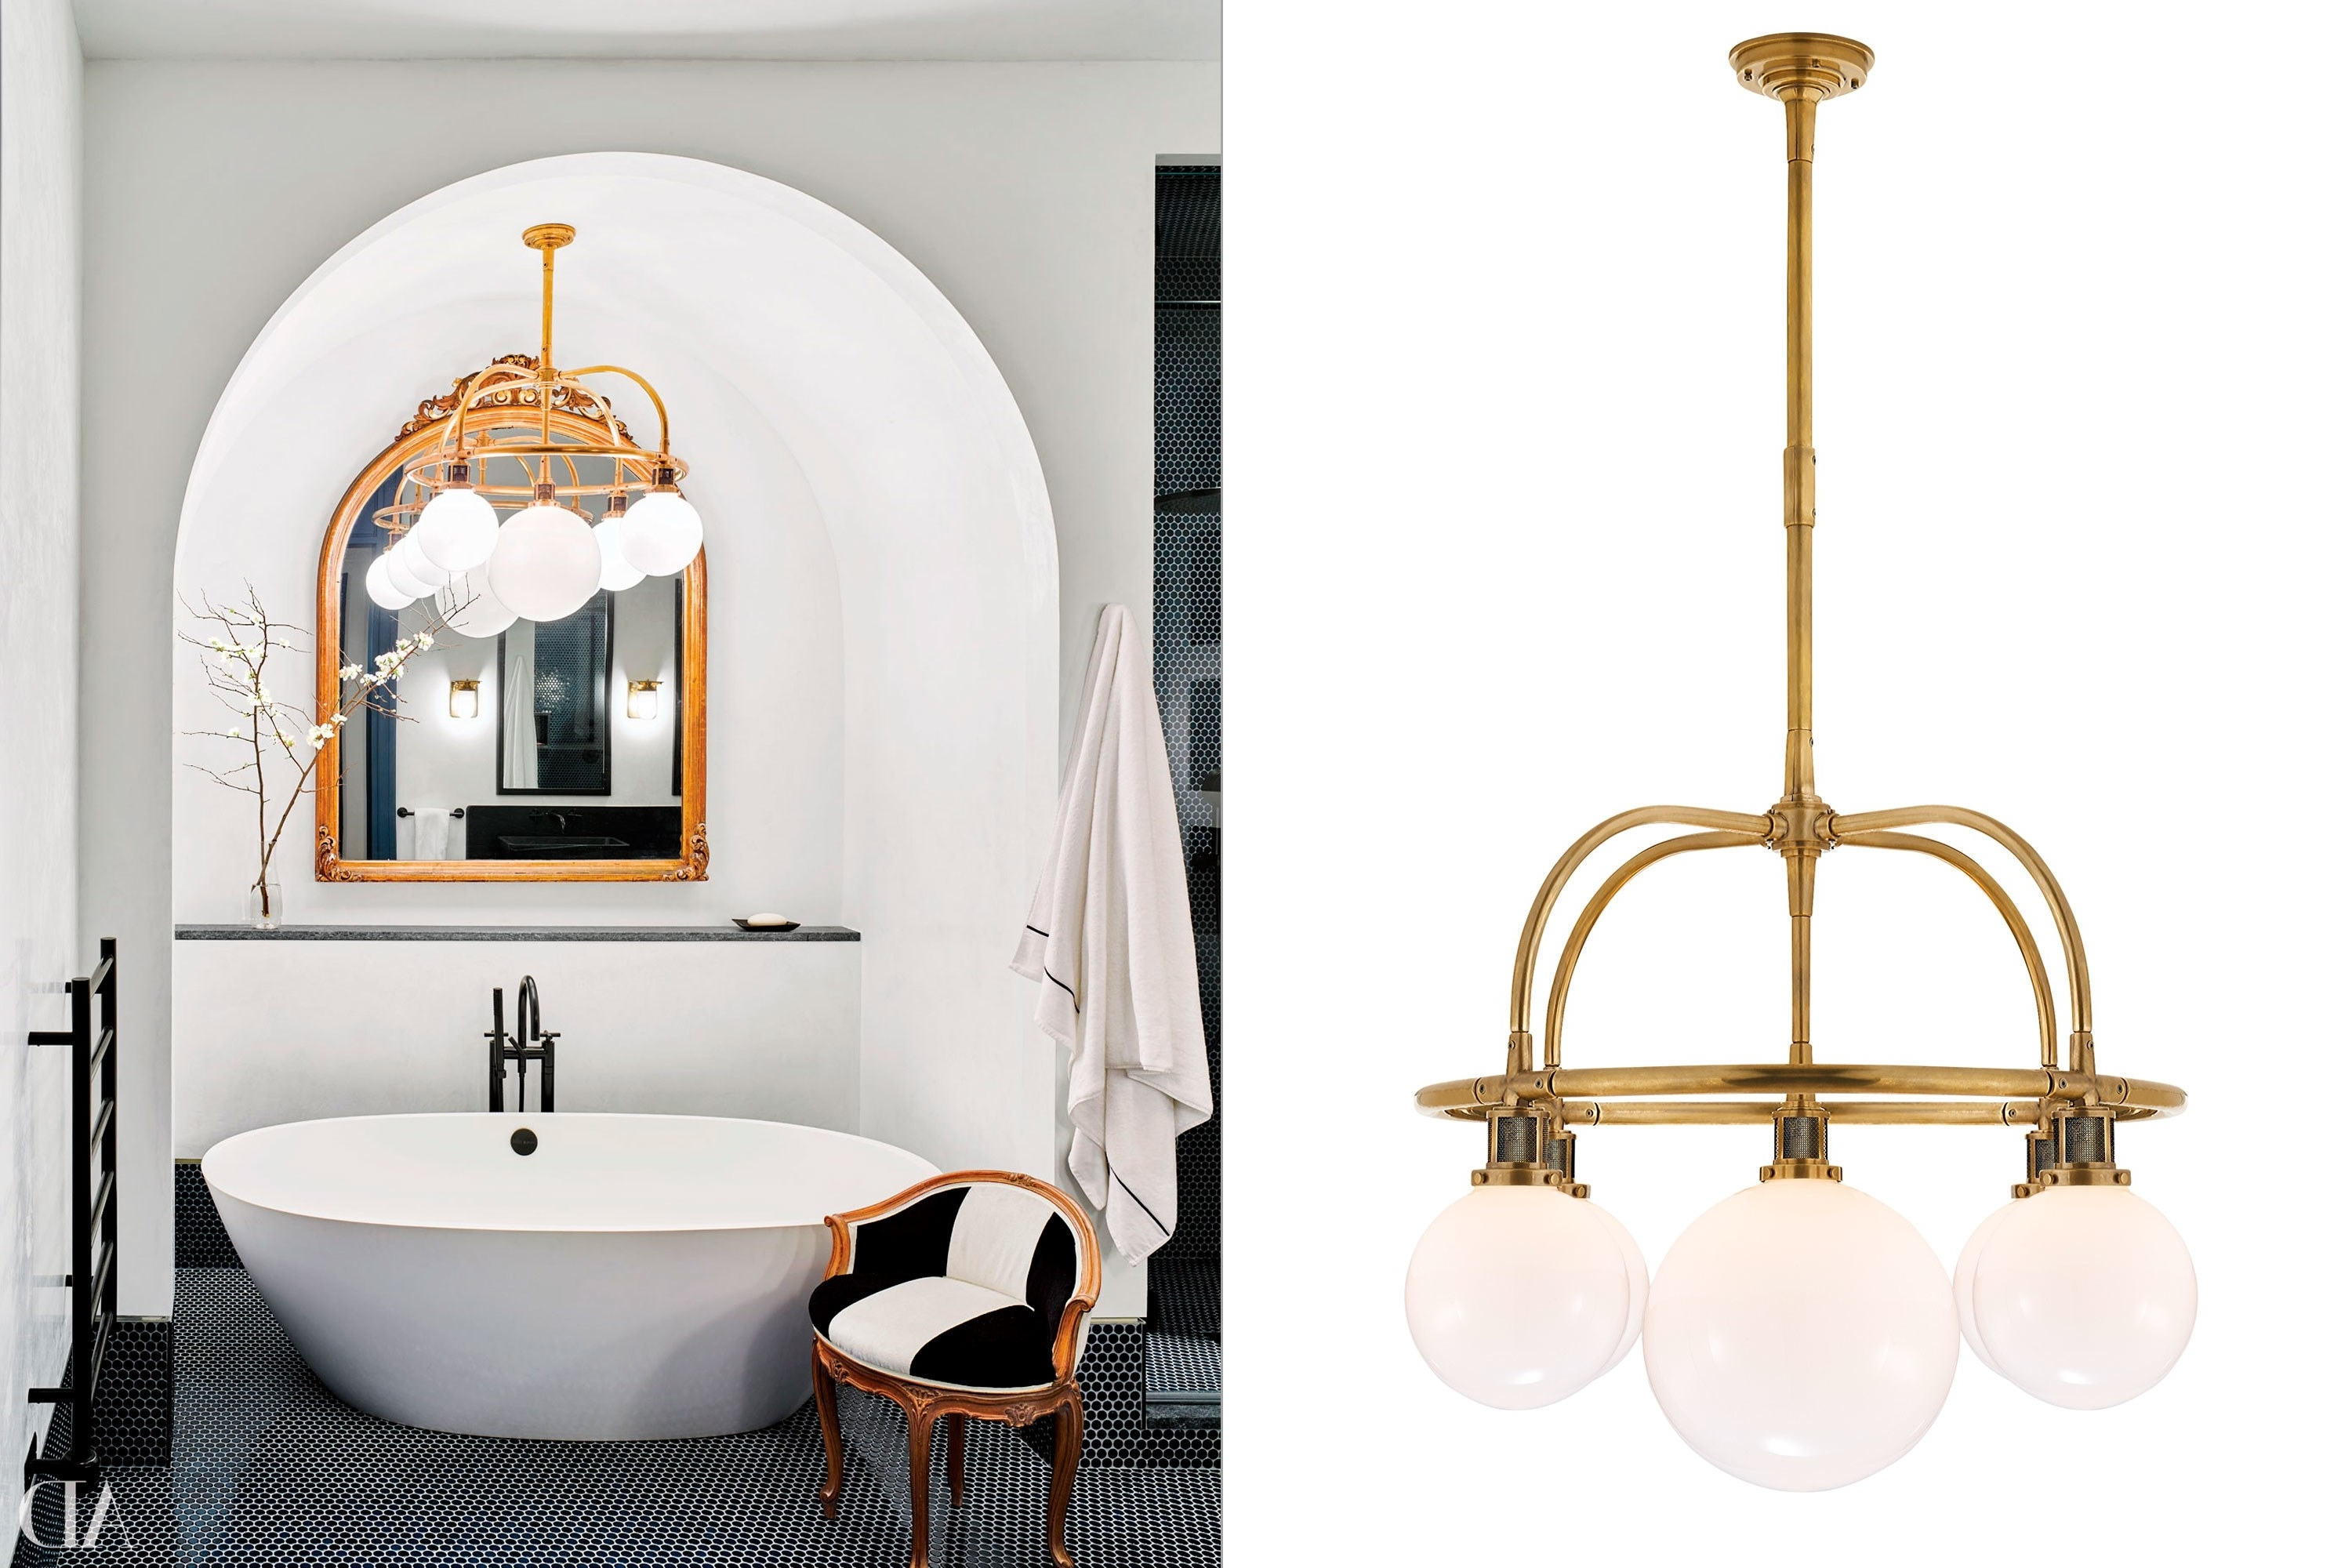 Chandelier Bathroom Lighting Fixtures Throughout 2018 Home Decor Ideas – Bathroom Lighting Photos (View 12 of 20)